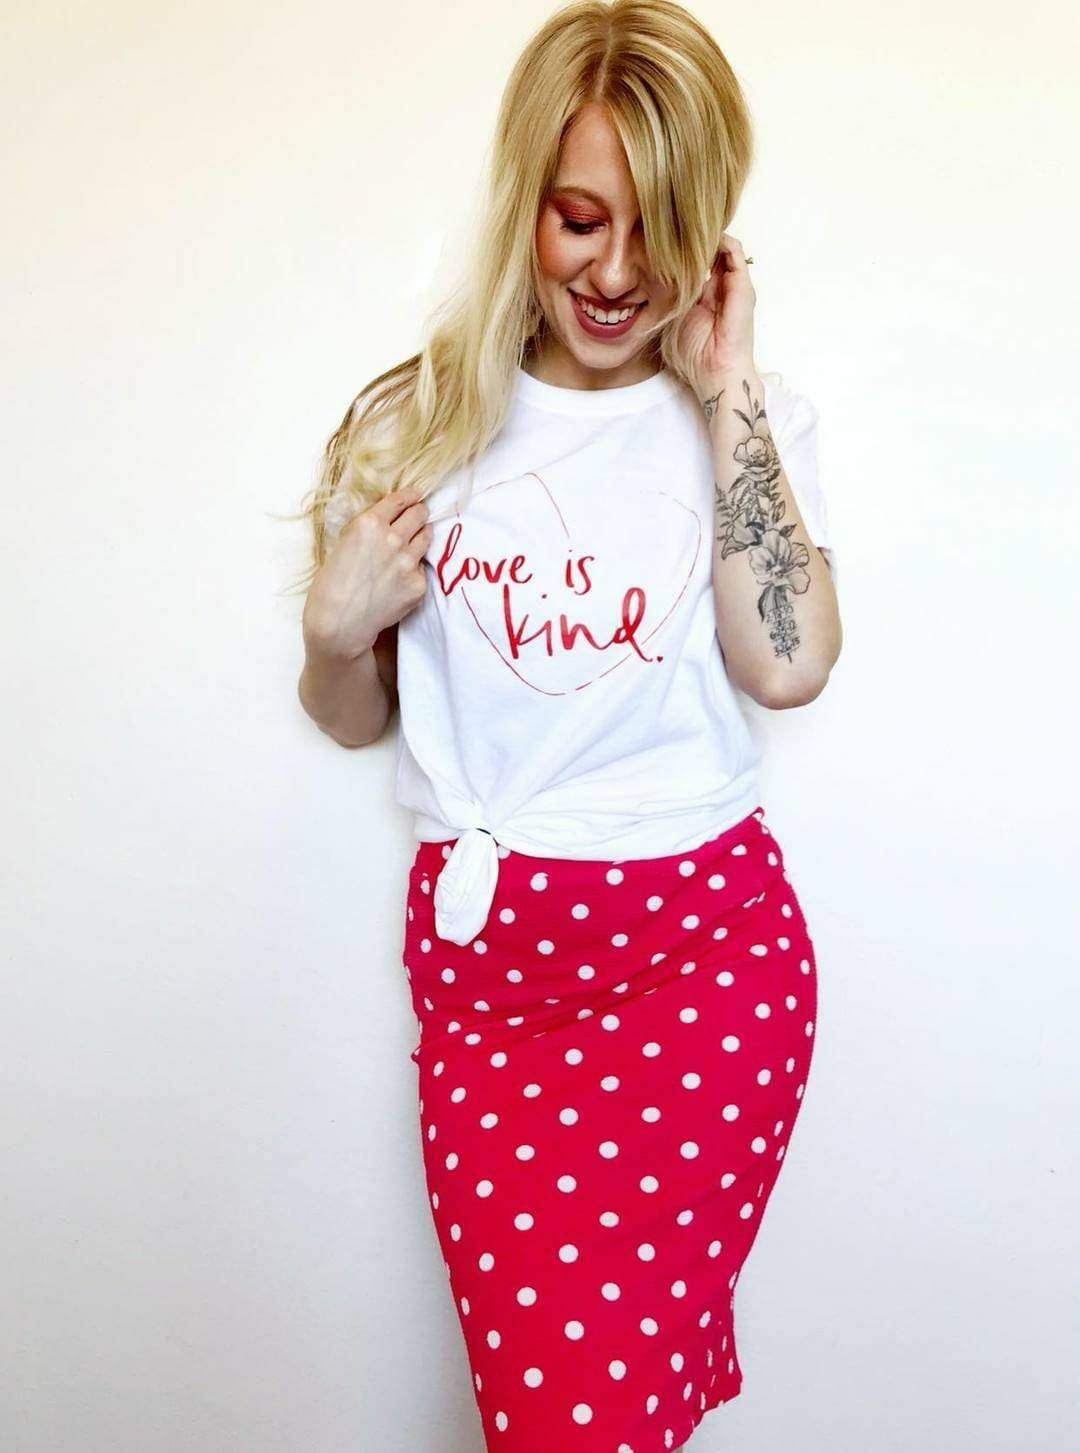 c26d53603 LOVE IS KIND Tee, Red Ink, Love Shirt, Love is Kind Tshirt, Kindness ...